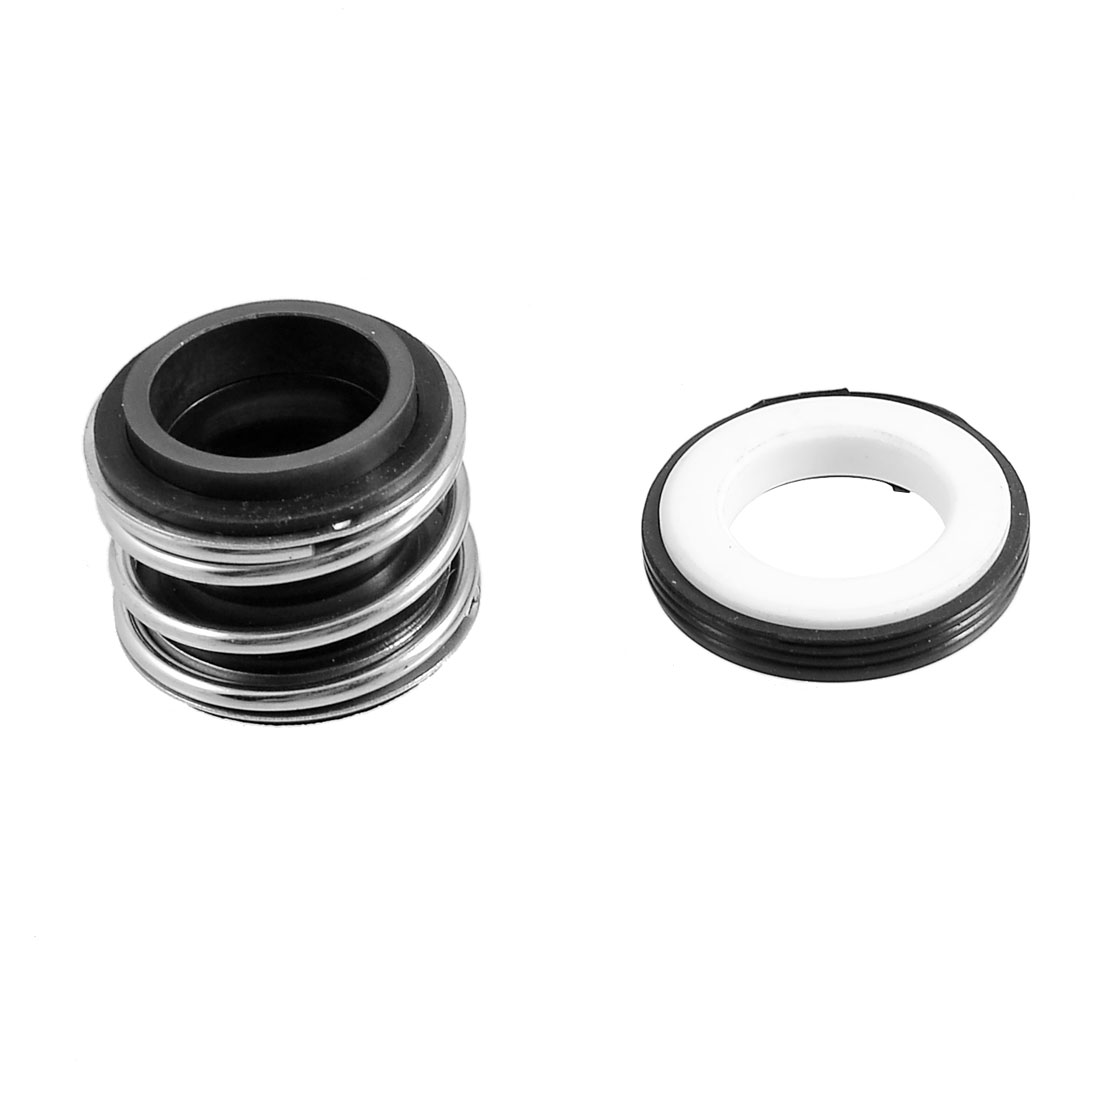 Water Pumps 18mm Inner Diameter Single Spring Mechanical Shaft Seal